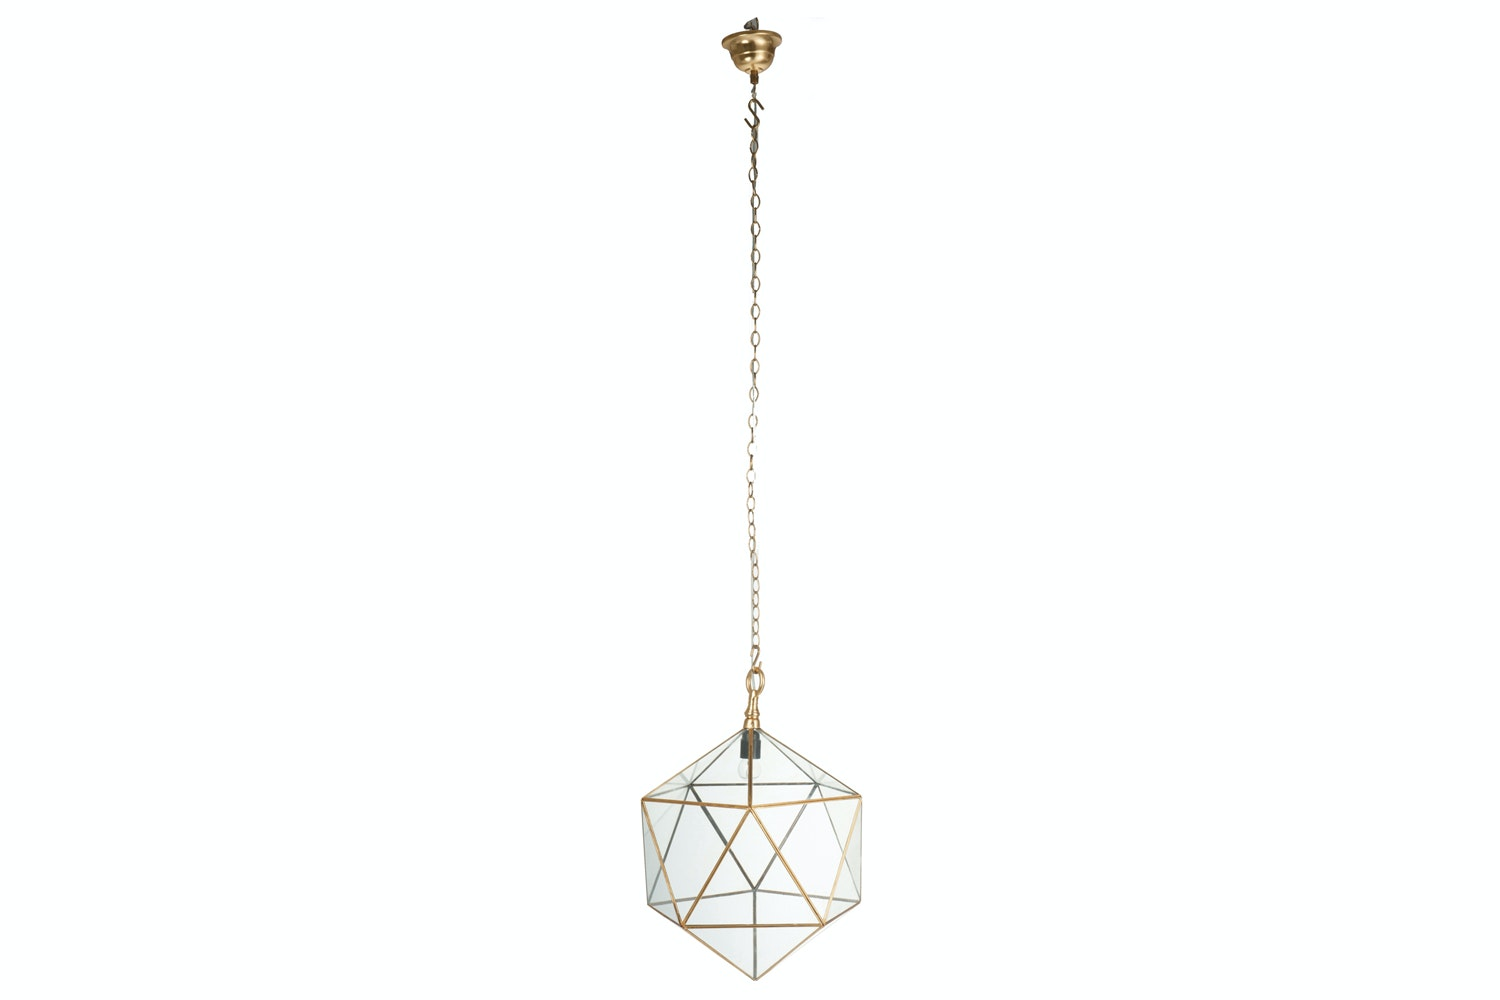 Small Geometric Ceiling Light